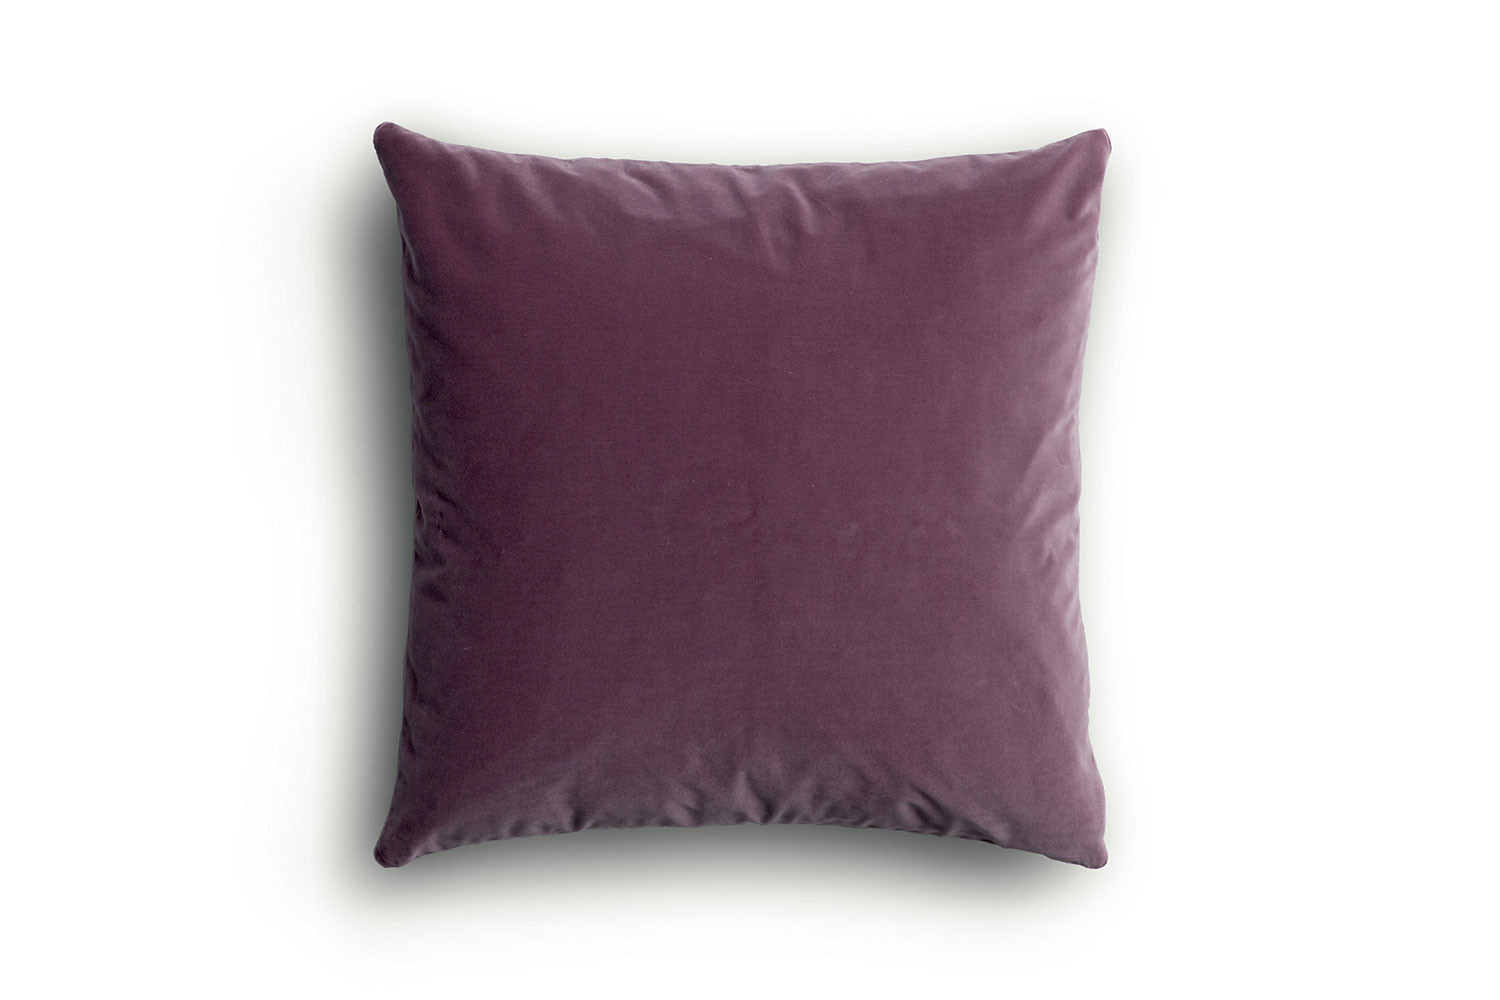 Scatter cushion C 60x60 cm with polyester filled pads